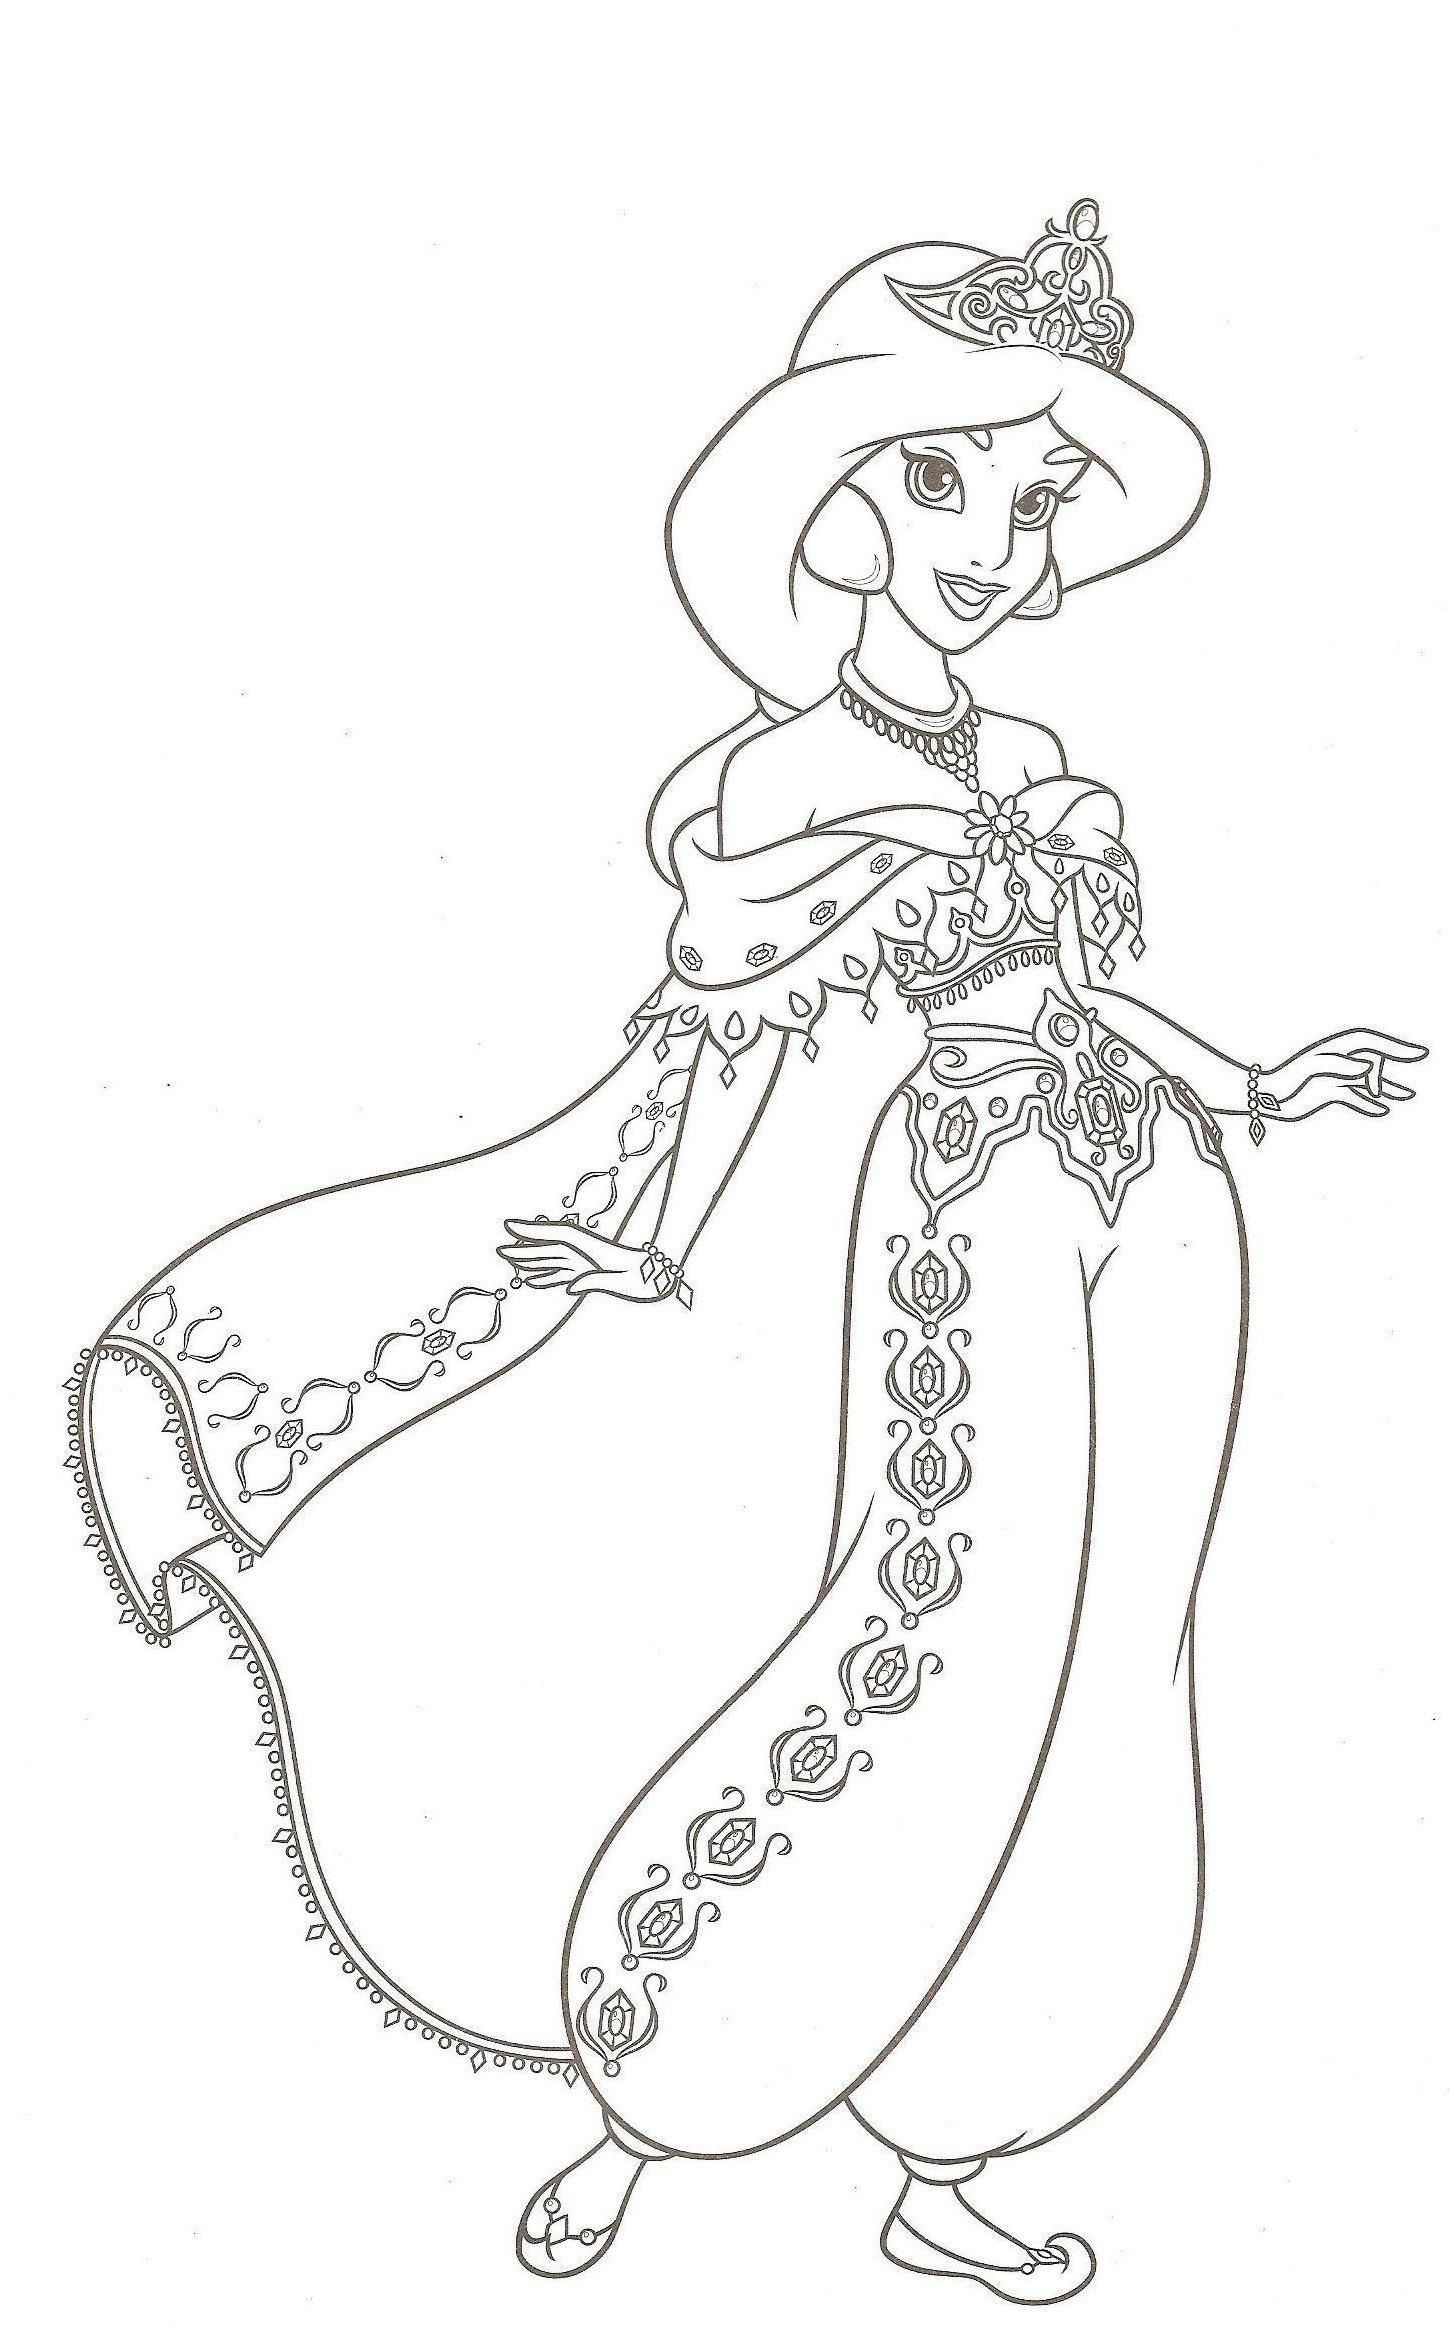 Princesse disney colorier coloriage personnages disney coloriage disney coloriage - Coloriage princesses disney a imprimer ...